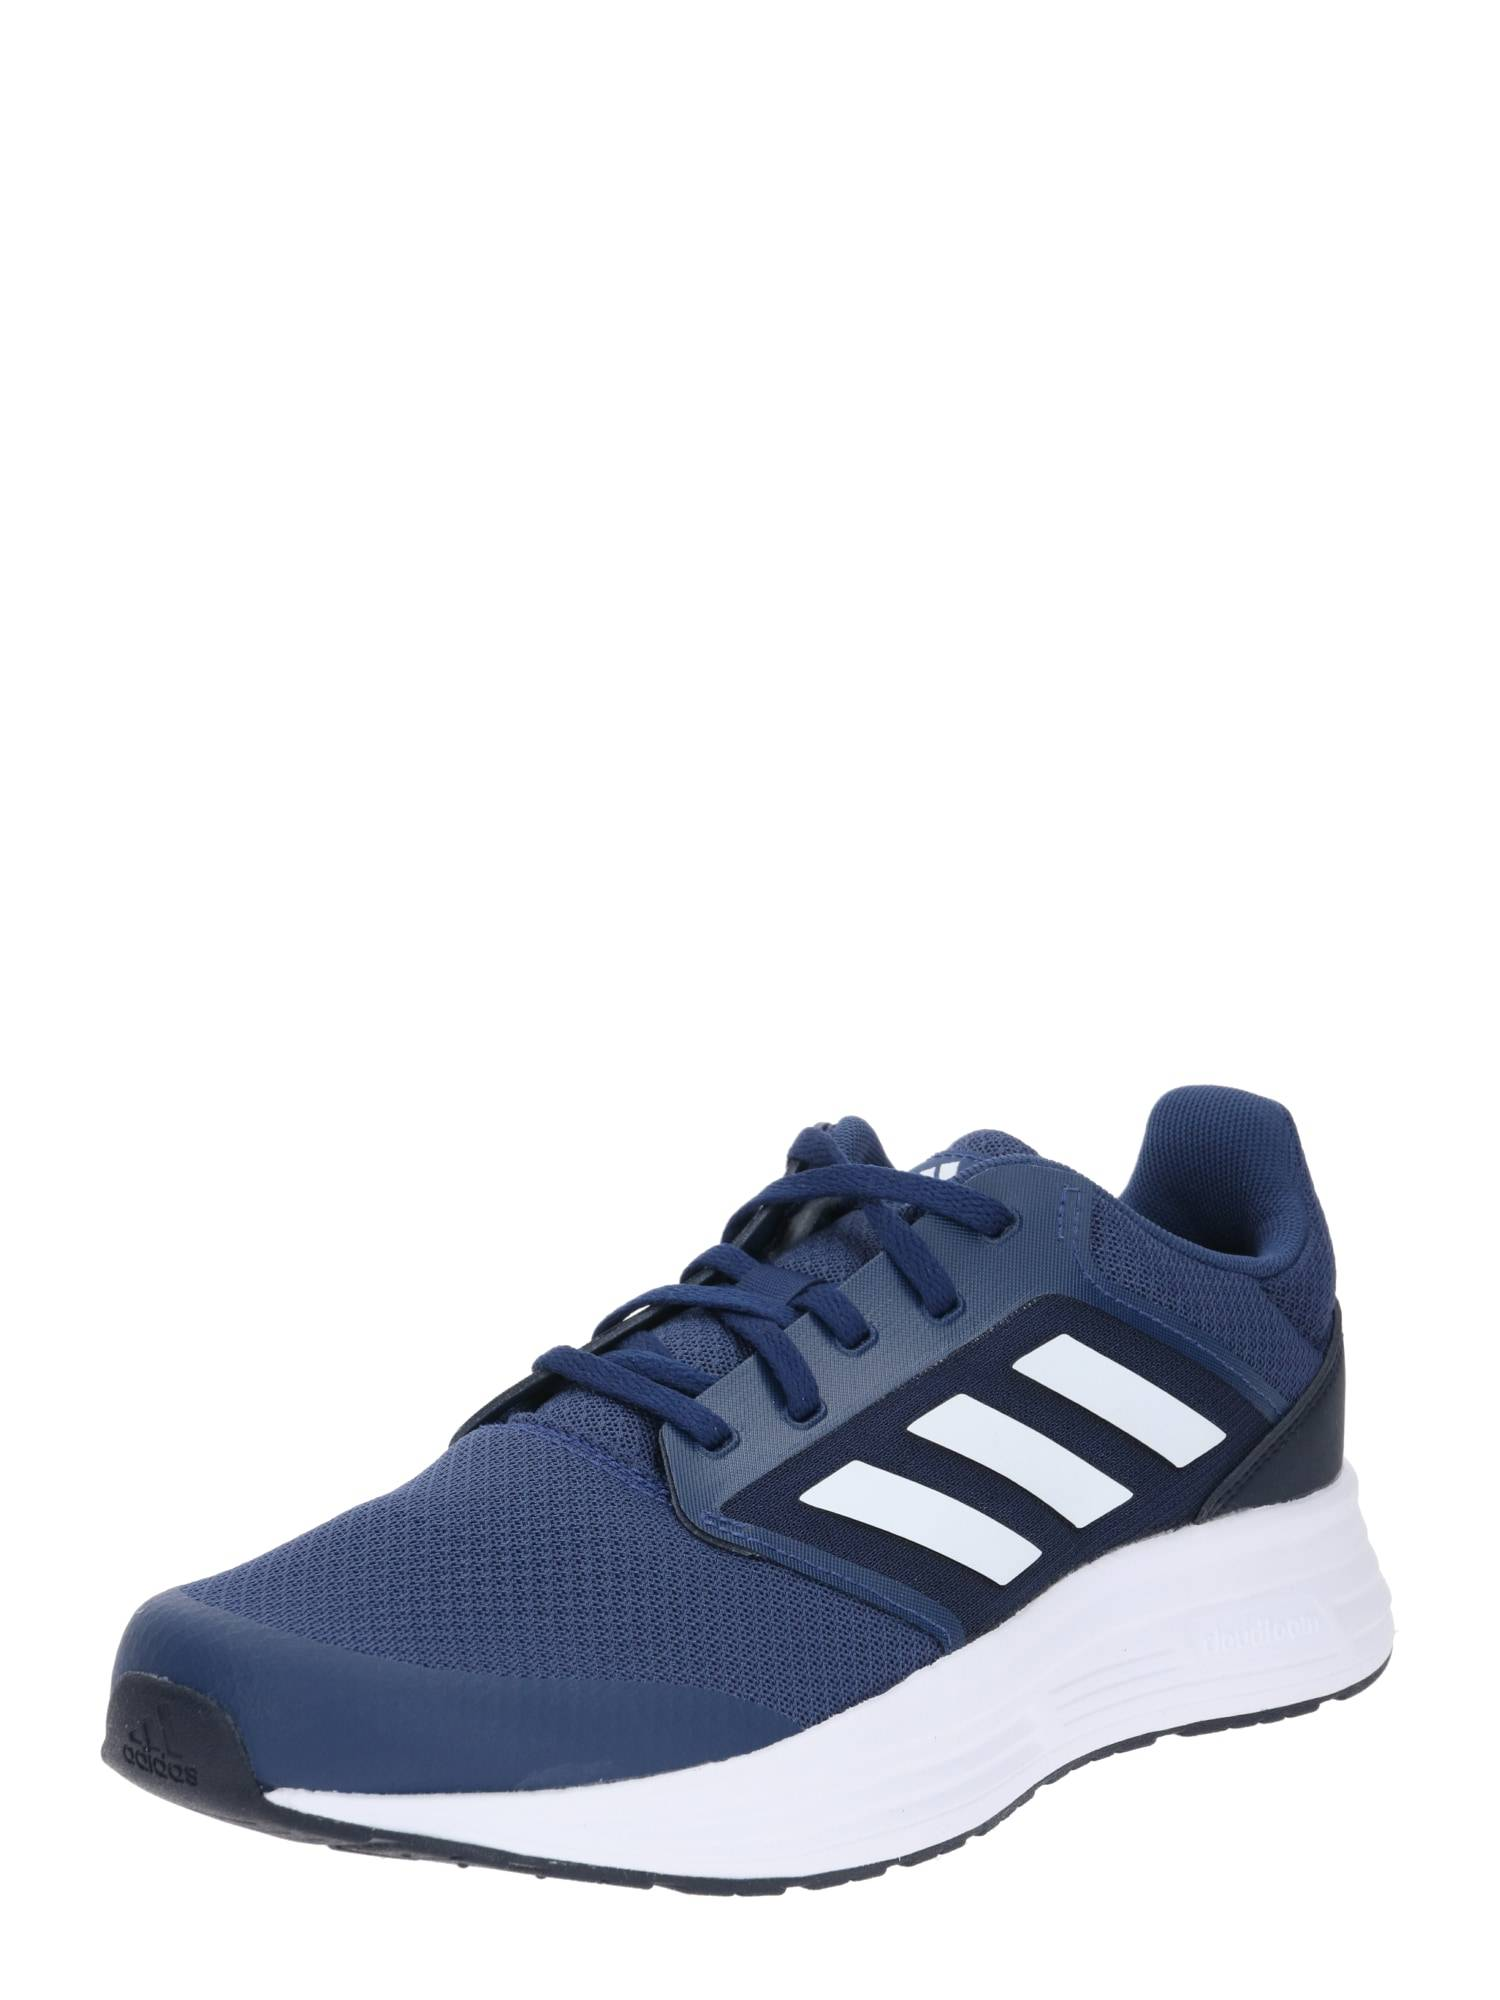 ADIDAS PERFORMANCE Chaussure de course 'Galaxy 5'  - Bleu - Taille: 44.5-45 - male